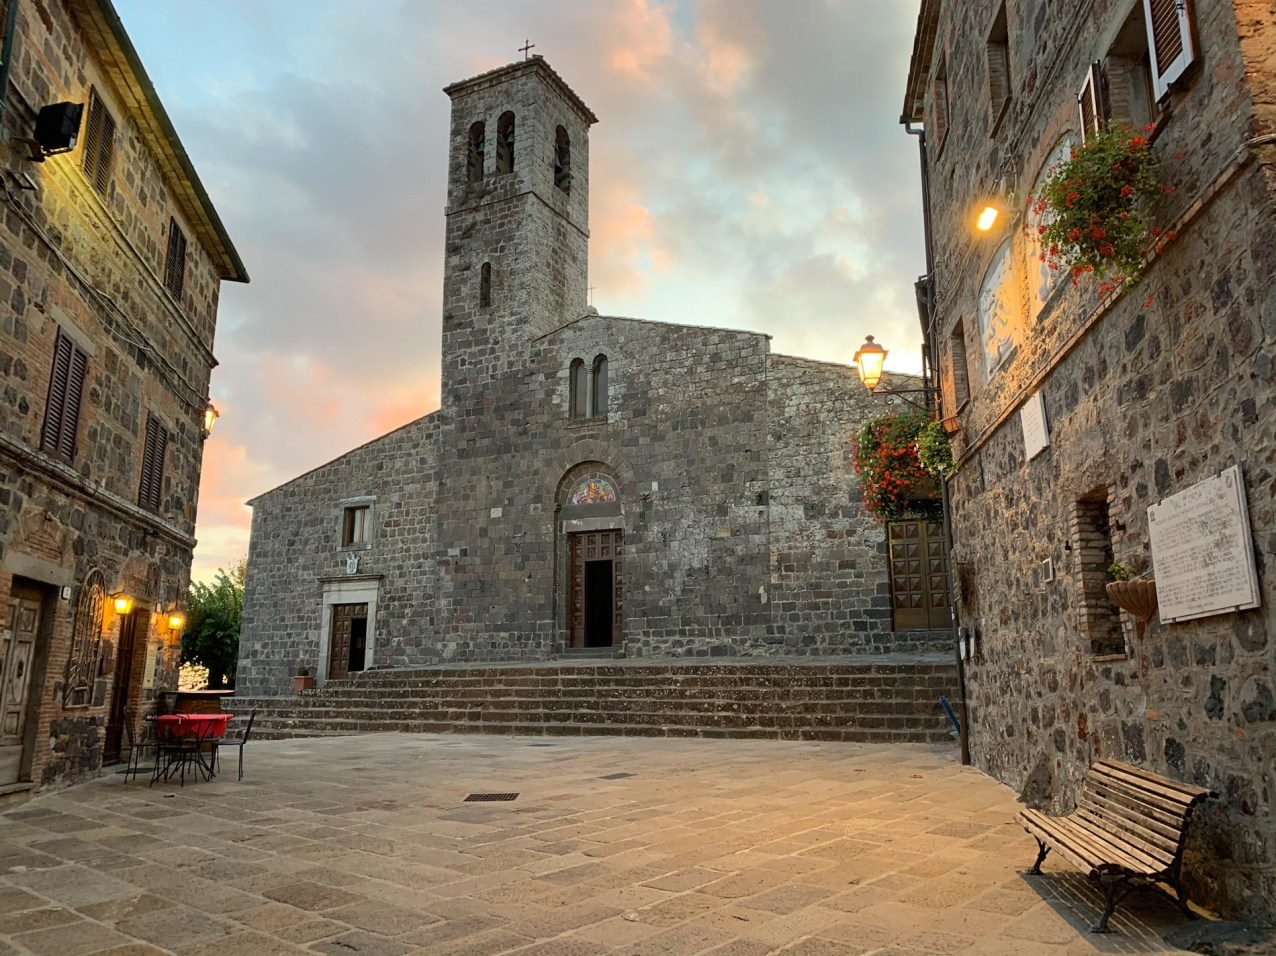 St. Peter's church, built in Romanic-Gothic style and dating back to the 13th century, in Radicofani